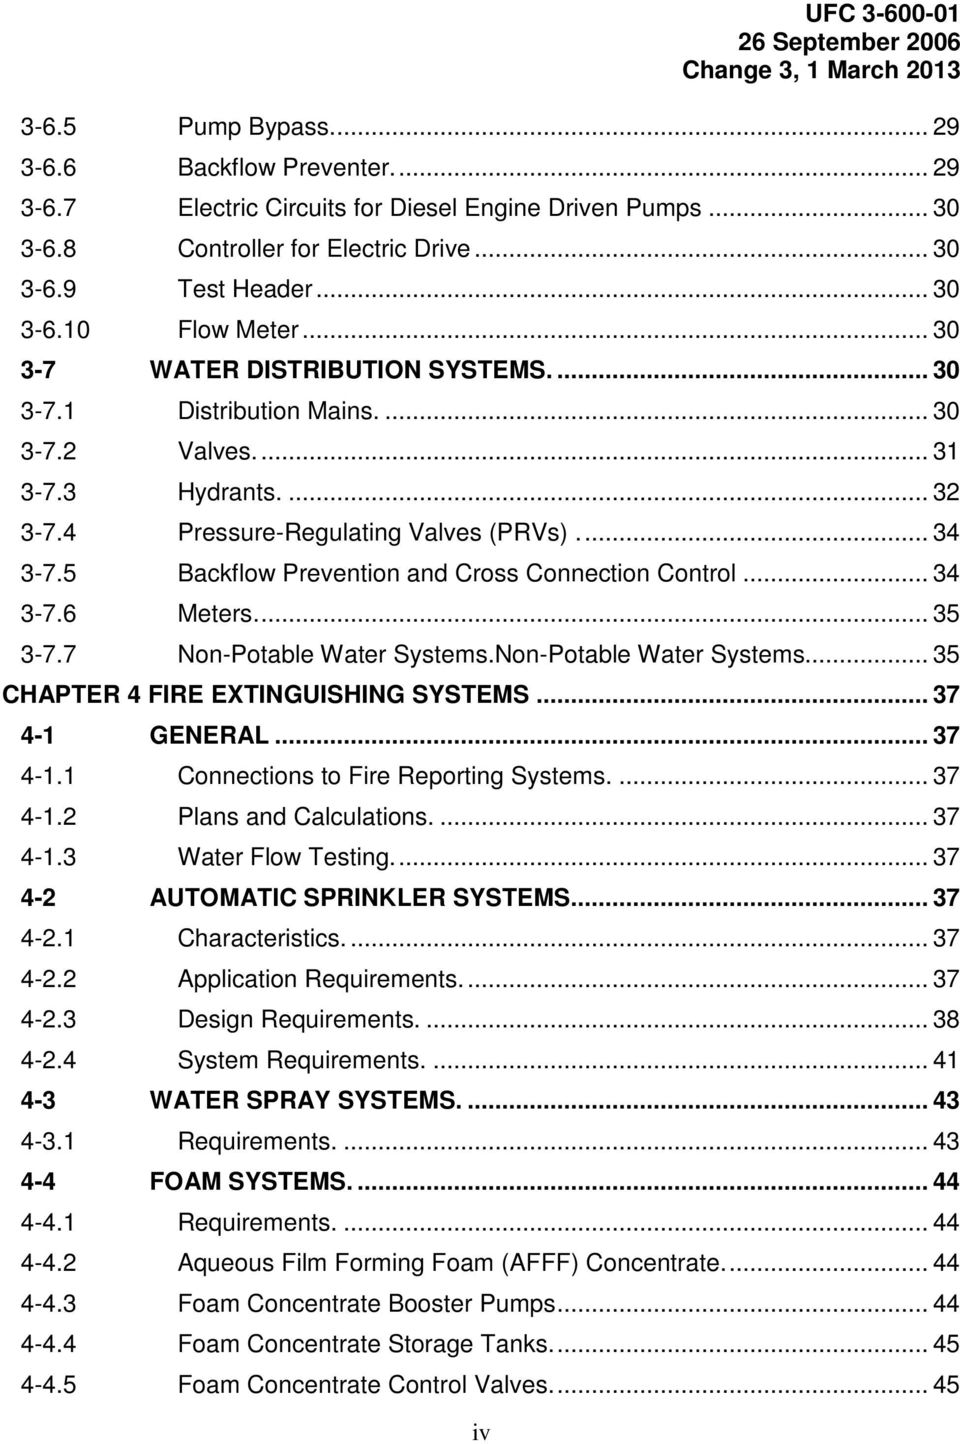 5 Backflow Prevention and Cross Connection Control... 34 3-7.6 Meters.... 35 3-7.7 Non-Potable Water Systems.Non-Potable Water Systems... 35 CHAPTER 4 FIRE EXTINGUISHING SYSTEMS... 37 4-1 GENERAL.